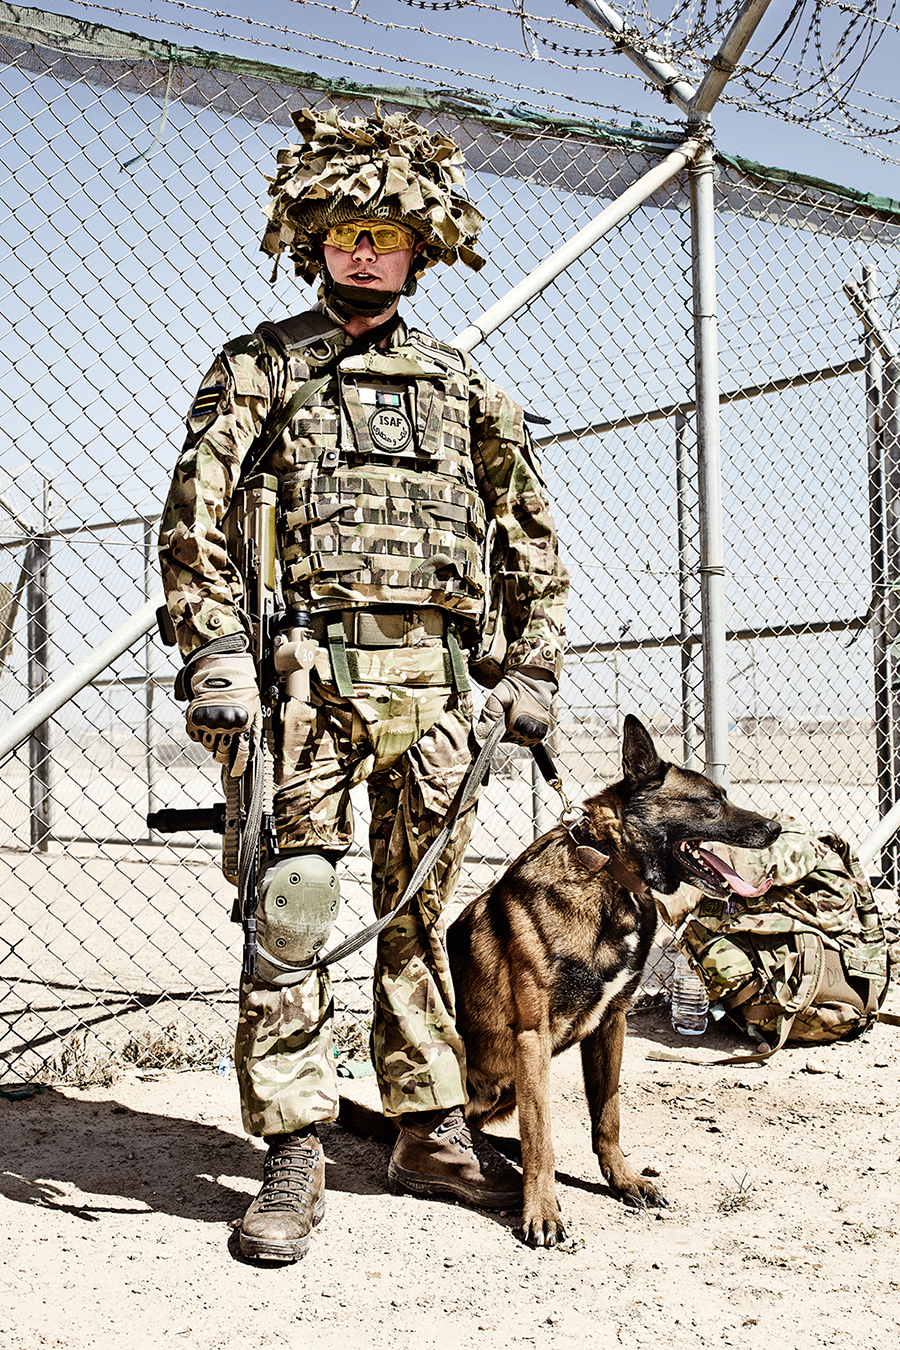 6 SHEET POSTER IN BLABY, WHETSTONE This is an image of one of the military working dogs and his handler, taken on the 28th April 2014. The dogs are highly trained and with their handlers will carry out tasks such as patrolling bases, searching vehicles and going on patrols on the front line.  At Camp Bastion the dogs are housed in air-conditioned kennels which have heating for the cold winter nights. When based out of forward operating bases the dogs sleep with their handlers.